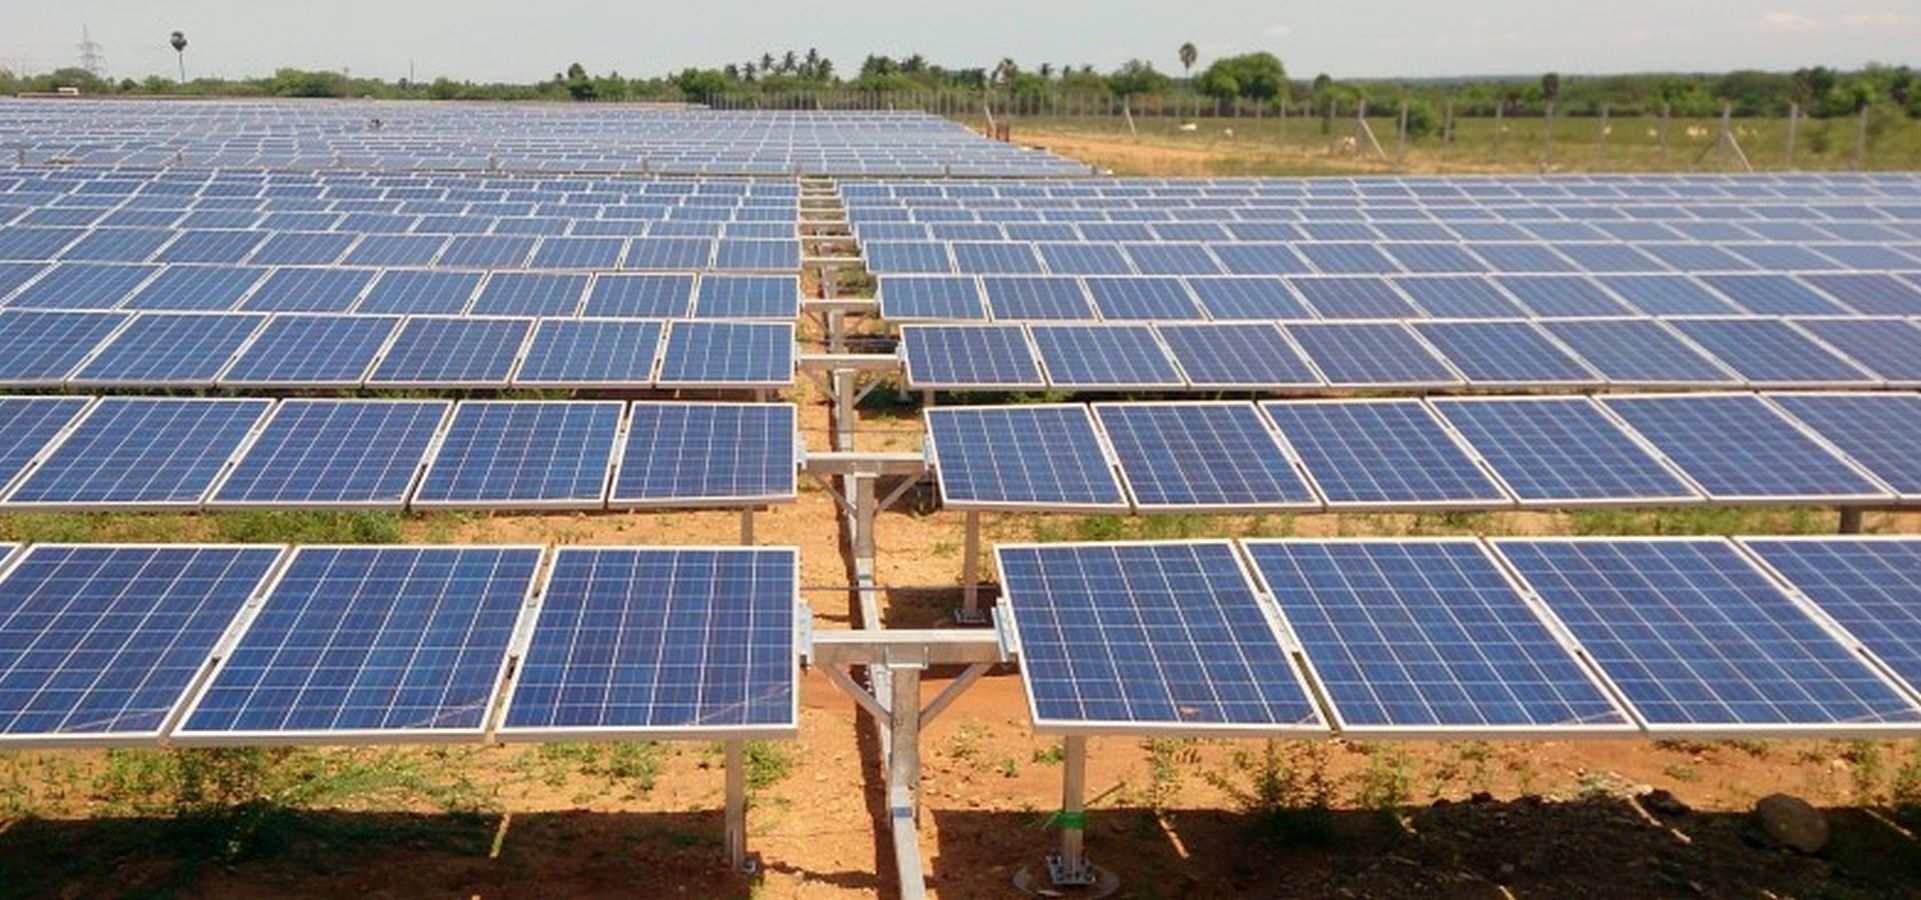 Solar cells on a dry field in India